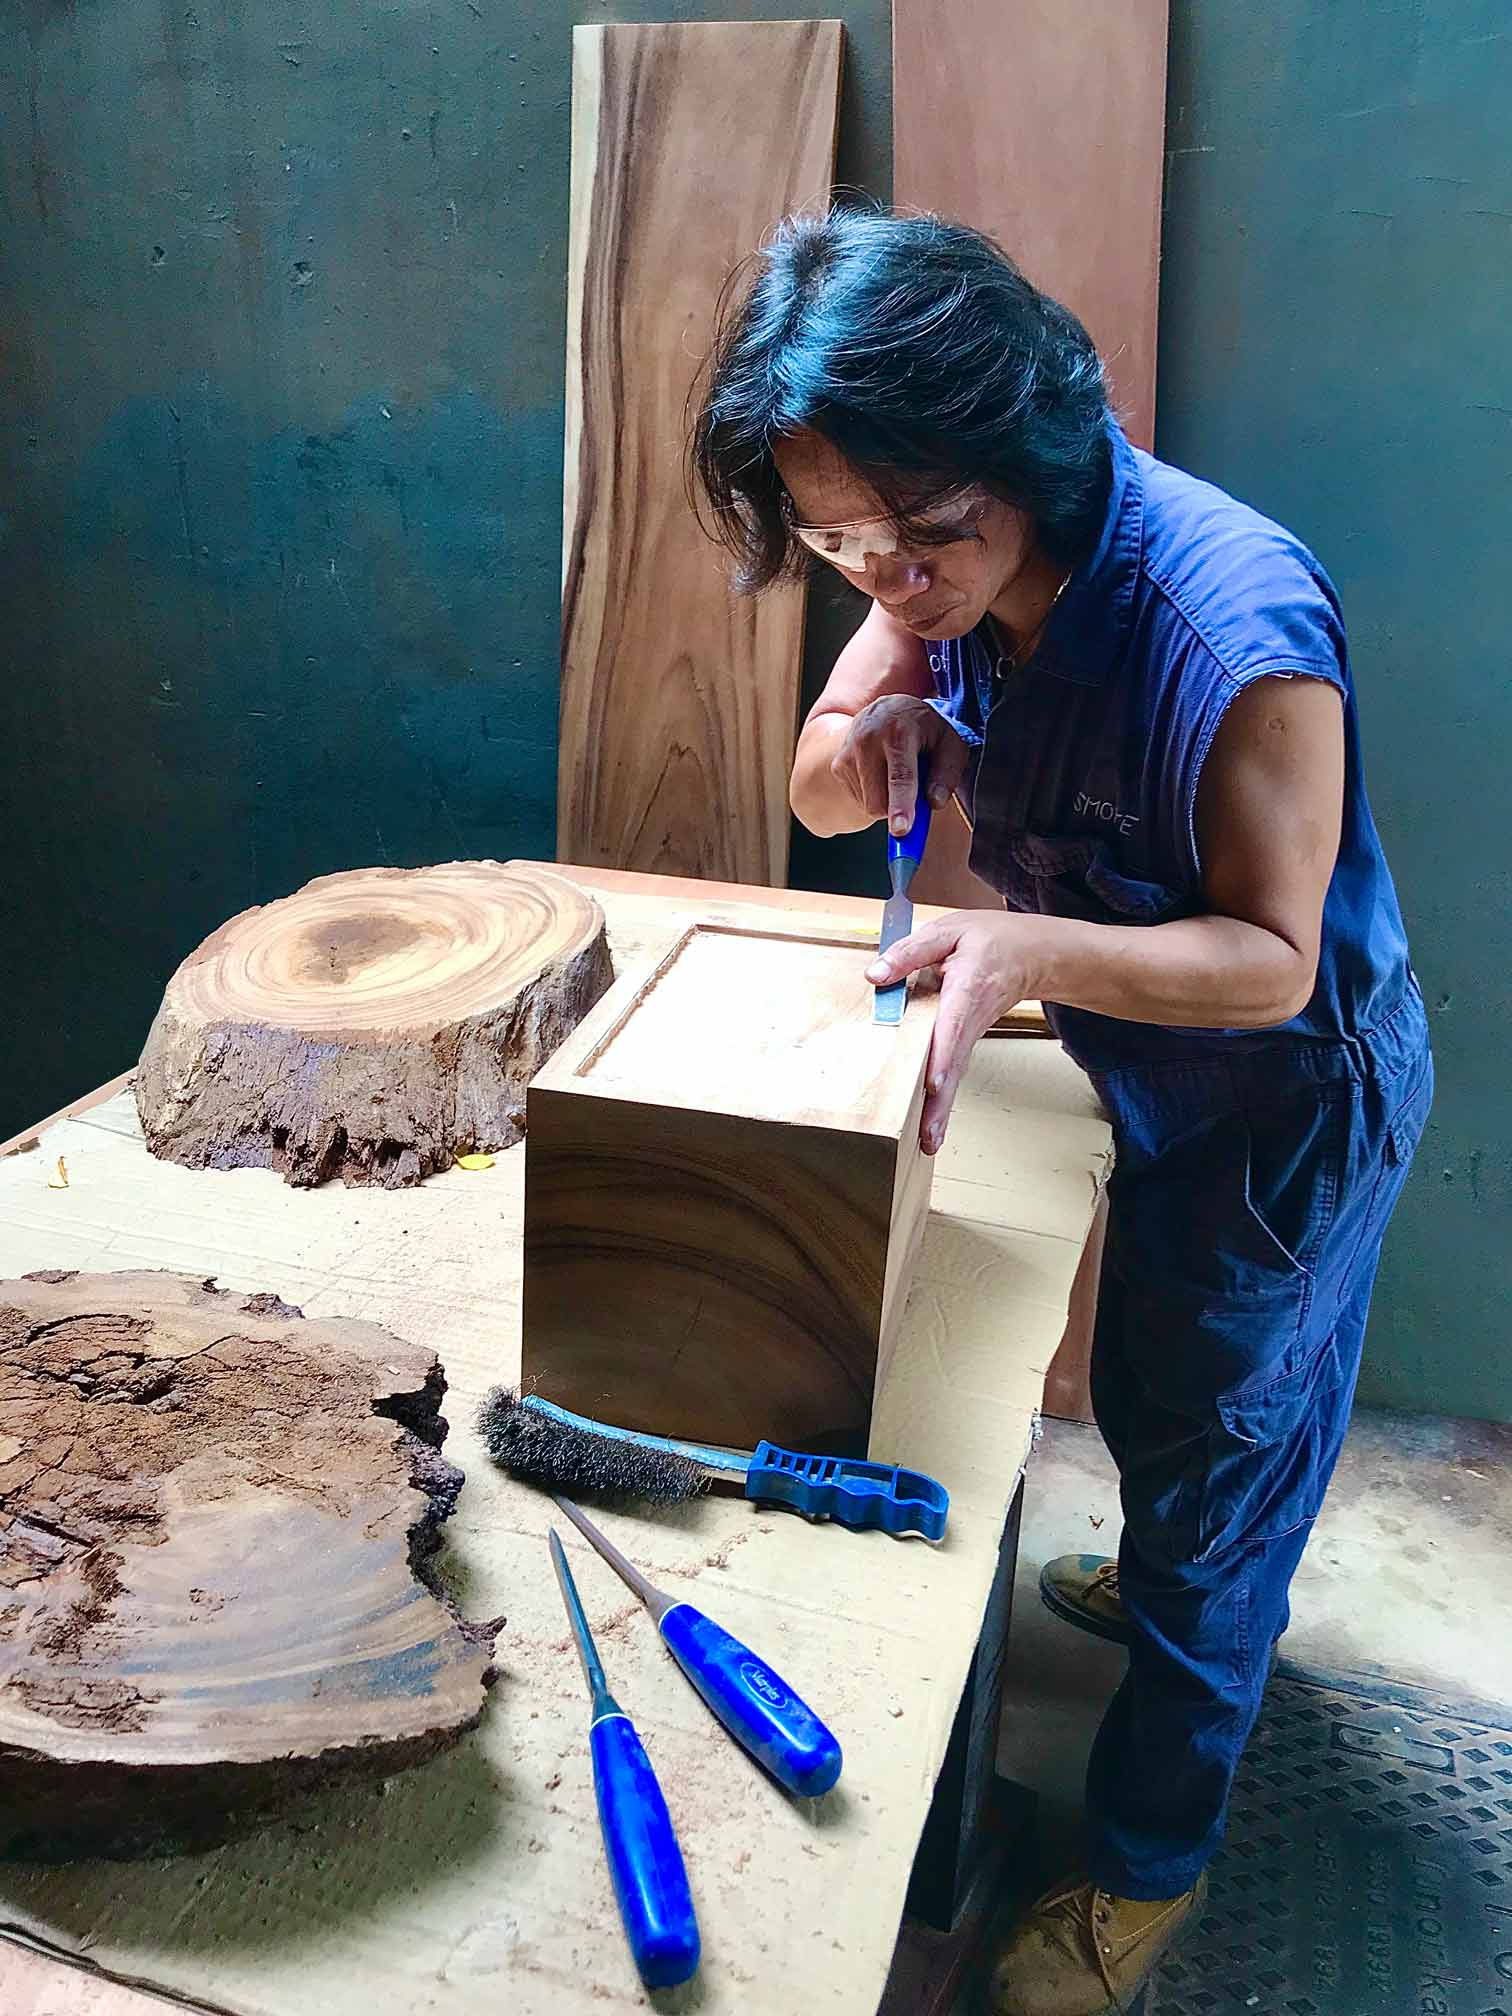 Handcrafted furniture Singapore - chiseling some wood